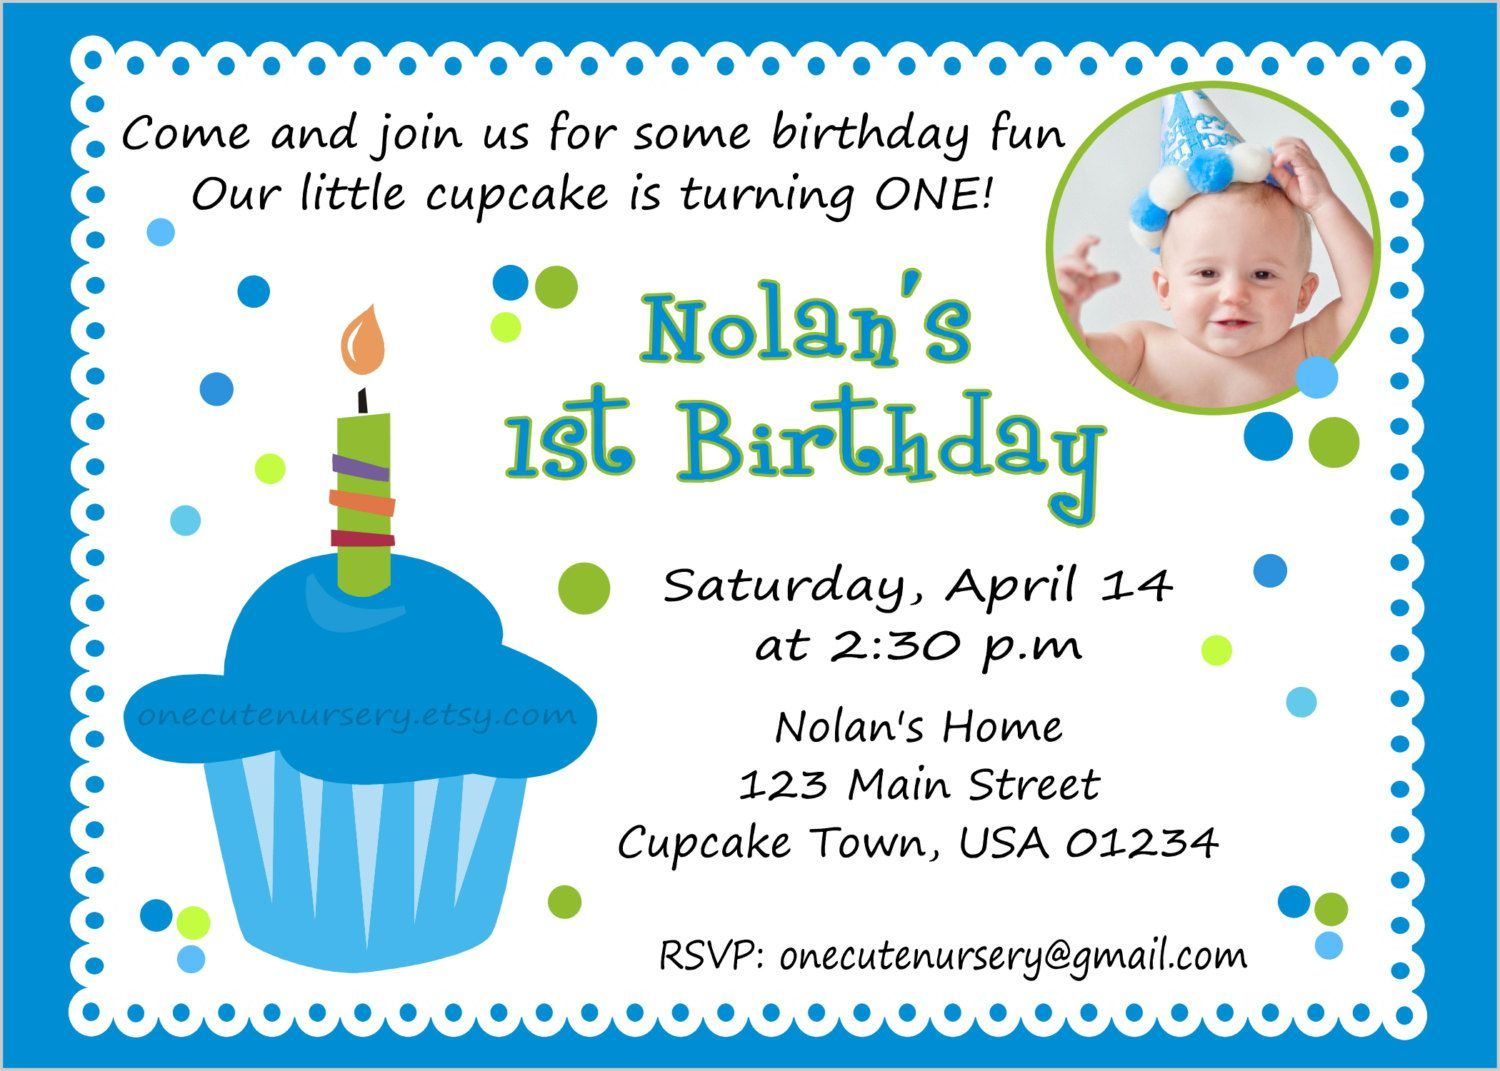 7th Birthday Invitation Wording Boy Birthday Invitation Card Template First Birthday Invitation Cards 1st Birthday Invitations Boy